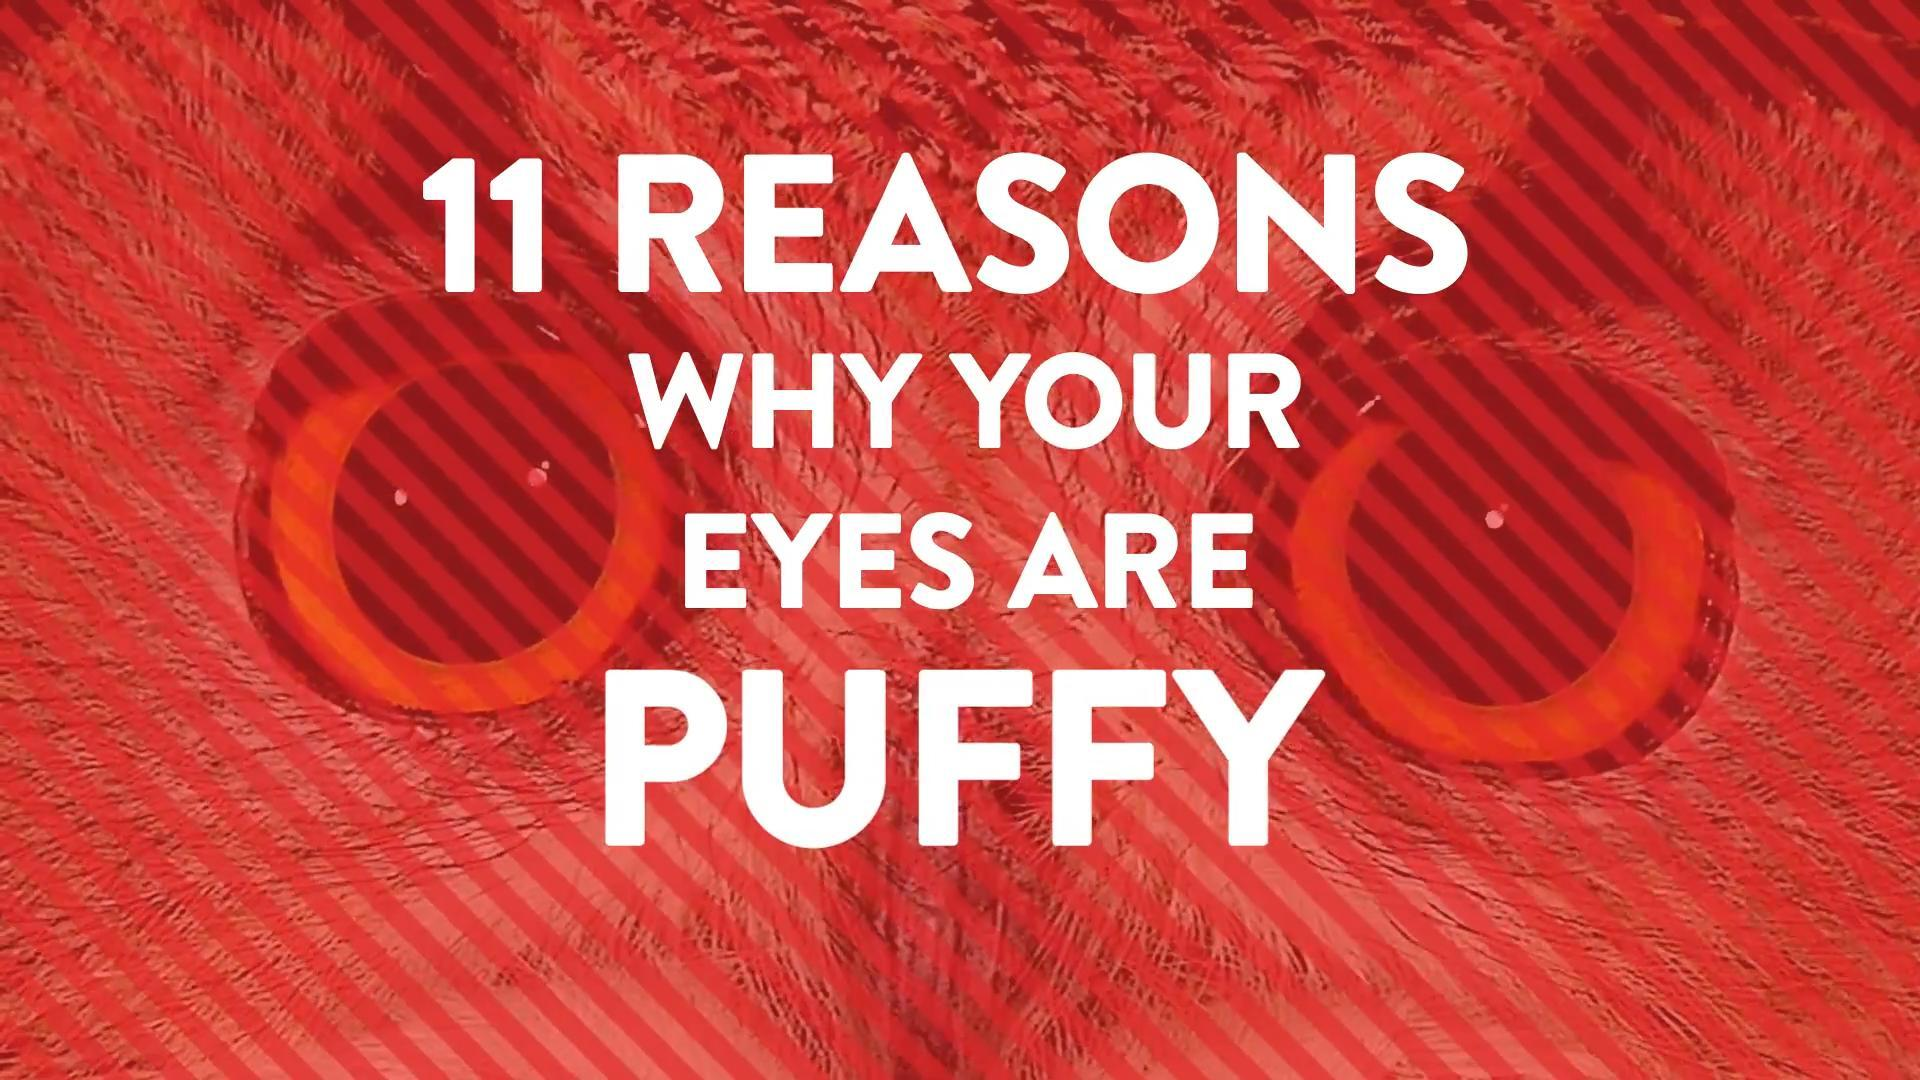 Why do you have puffy eyes?